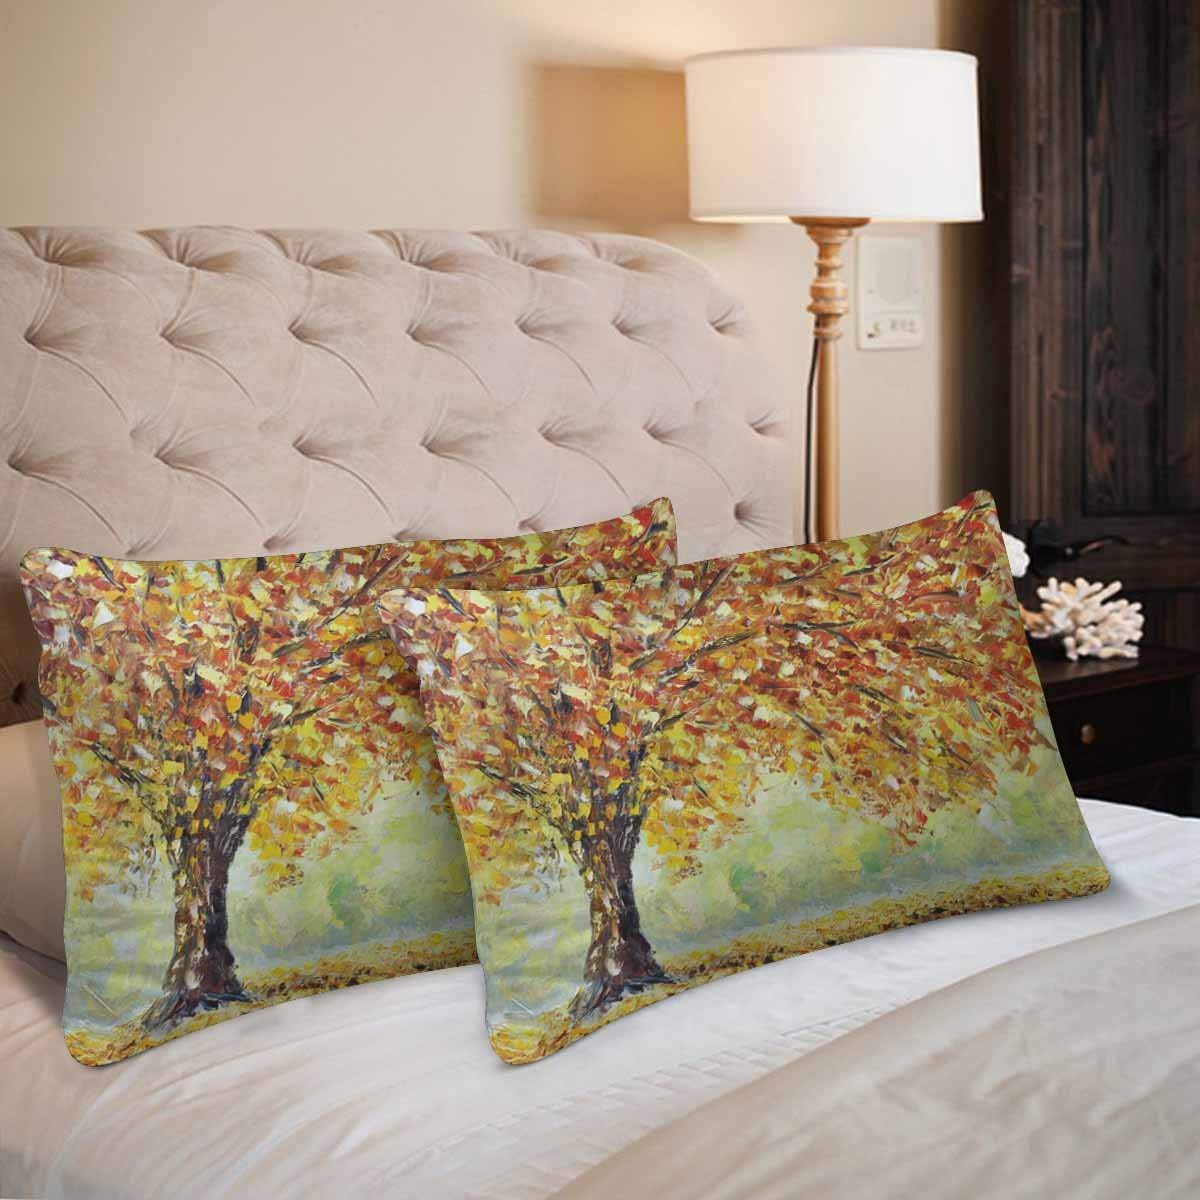 GCKG Lonely Autumn Tree Fallen Leaves Clouds Pillow Cases Pillowcase 20x30 inches Set of 2 - image 2 de 4